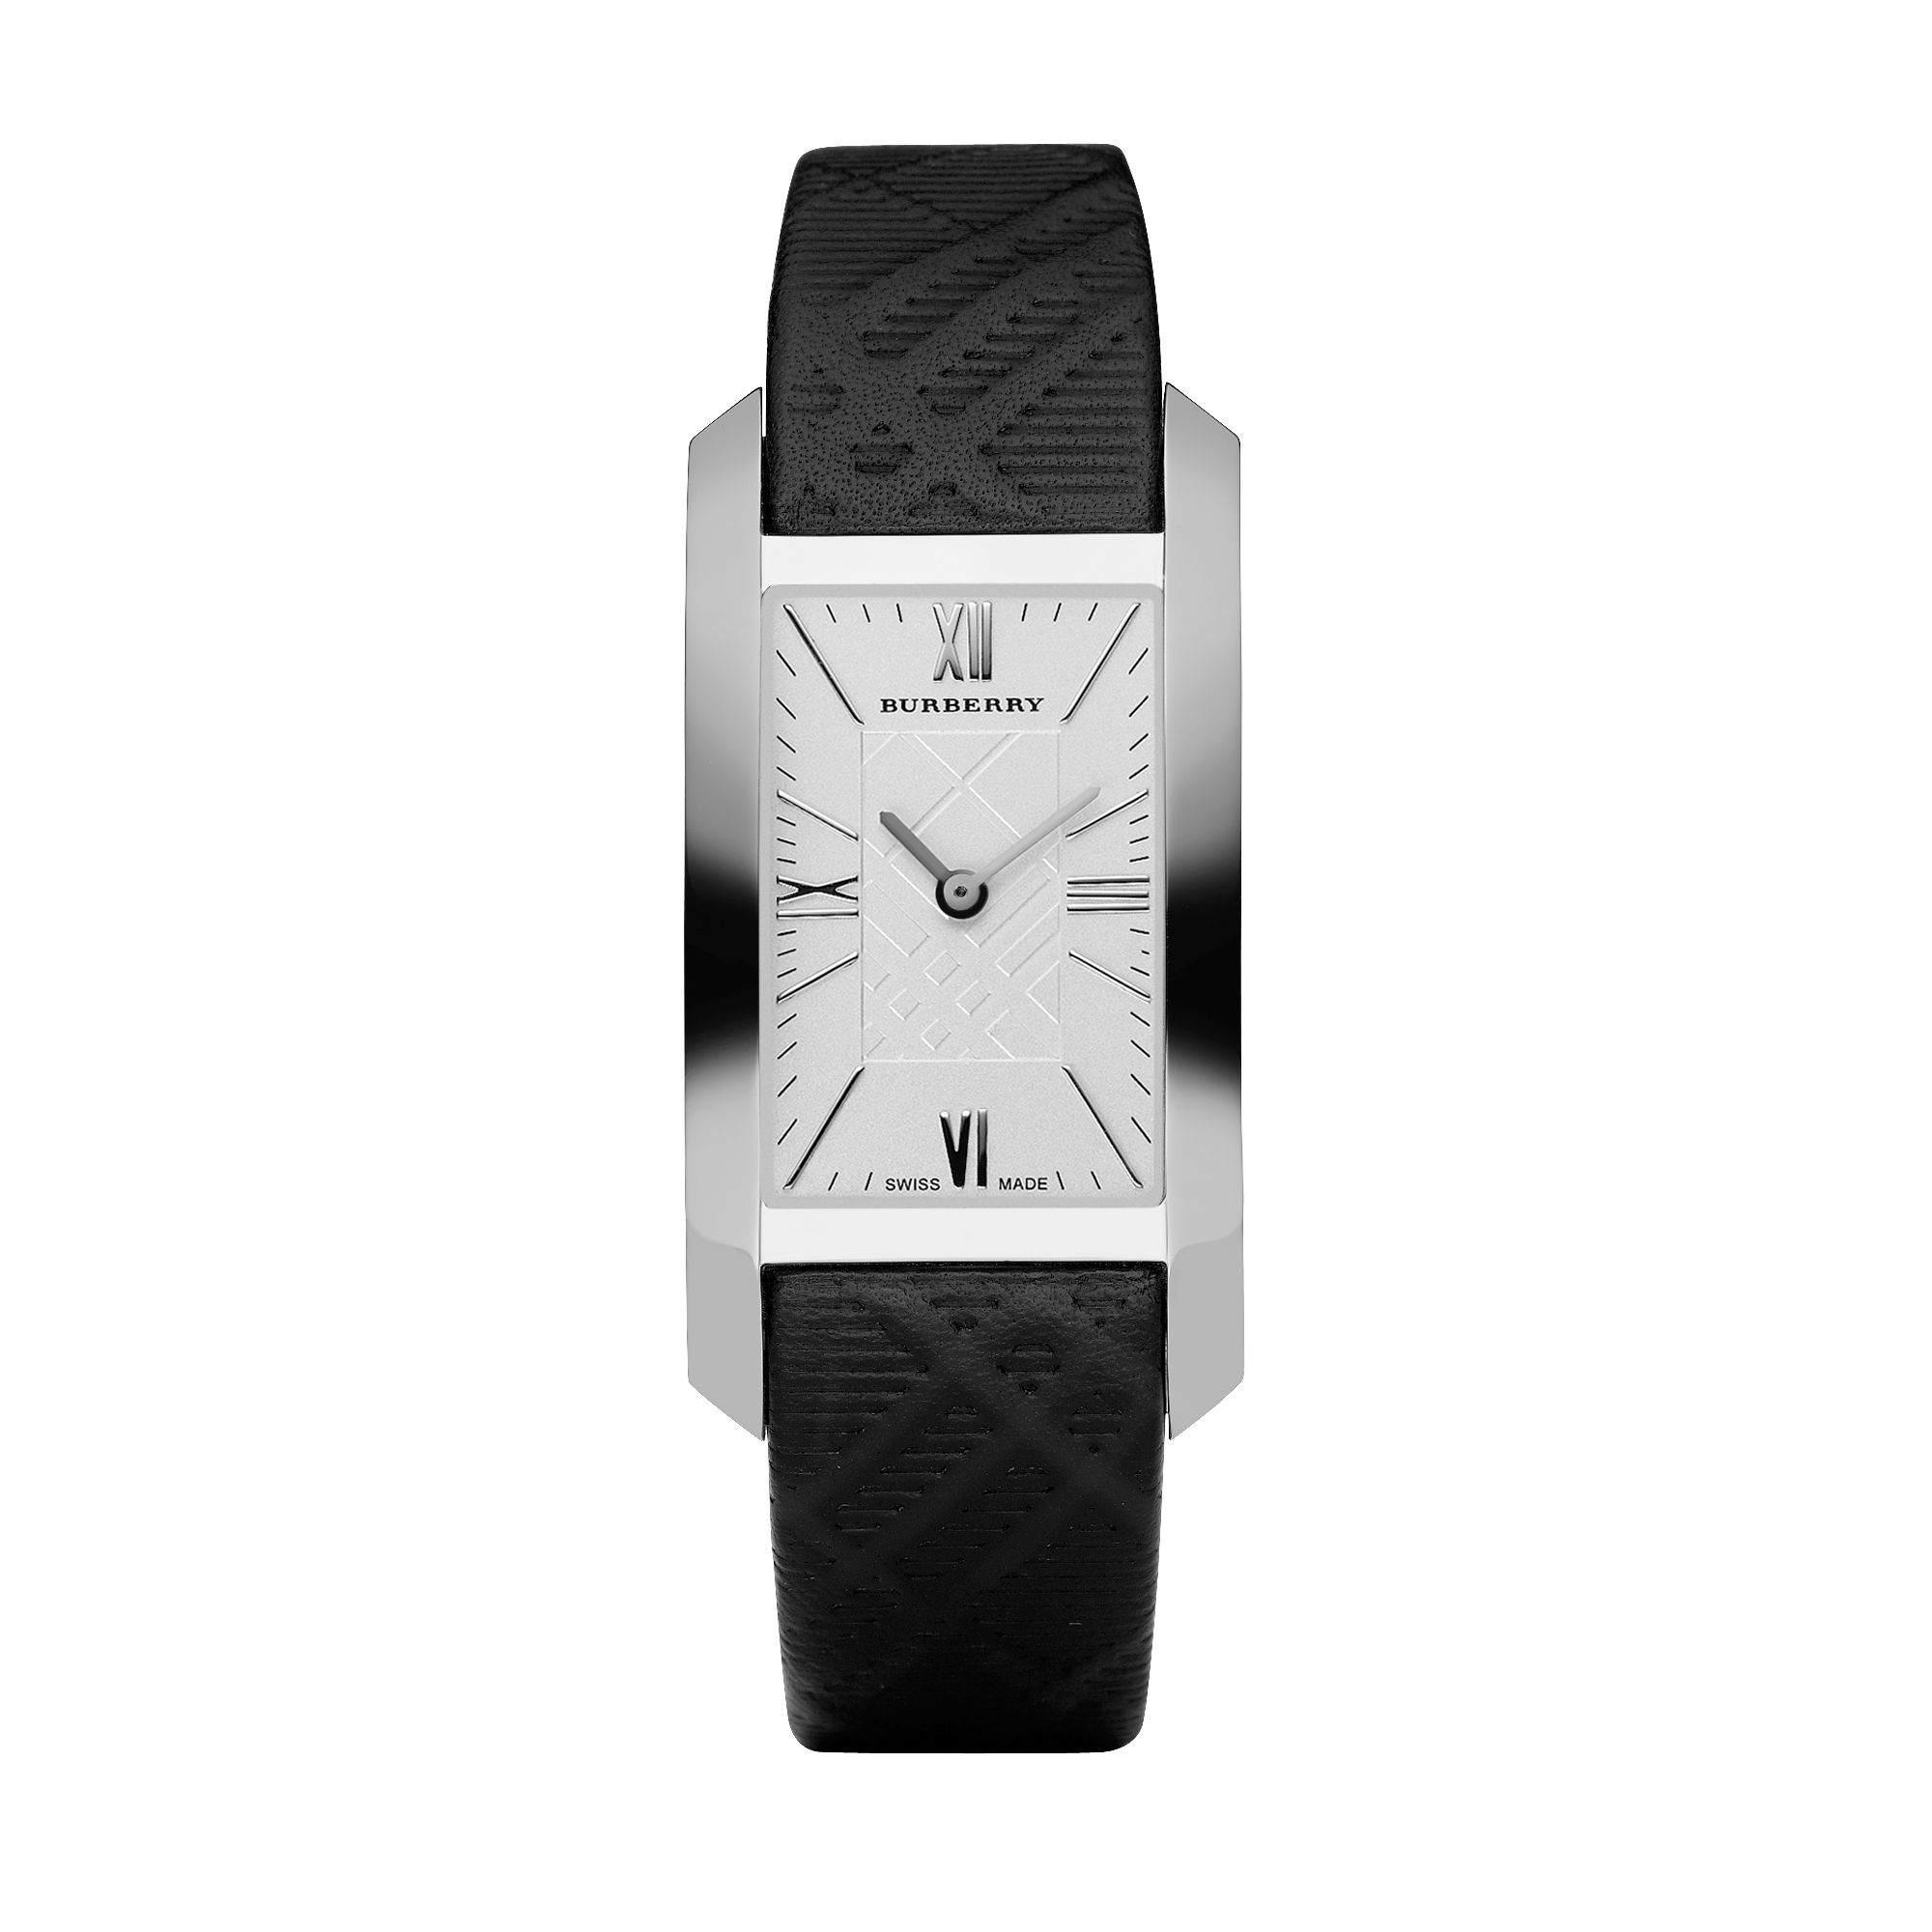 Rectangular Case, Silver dial, black check emboss